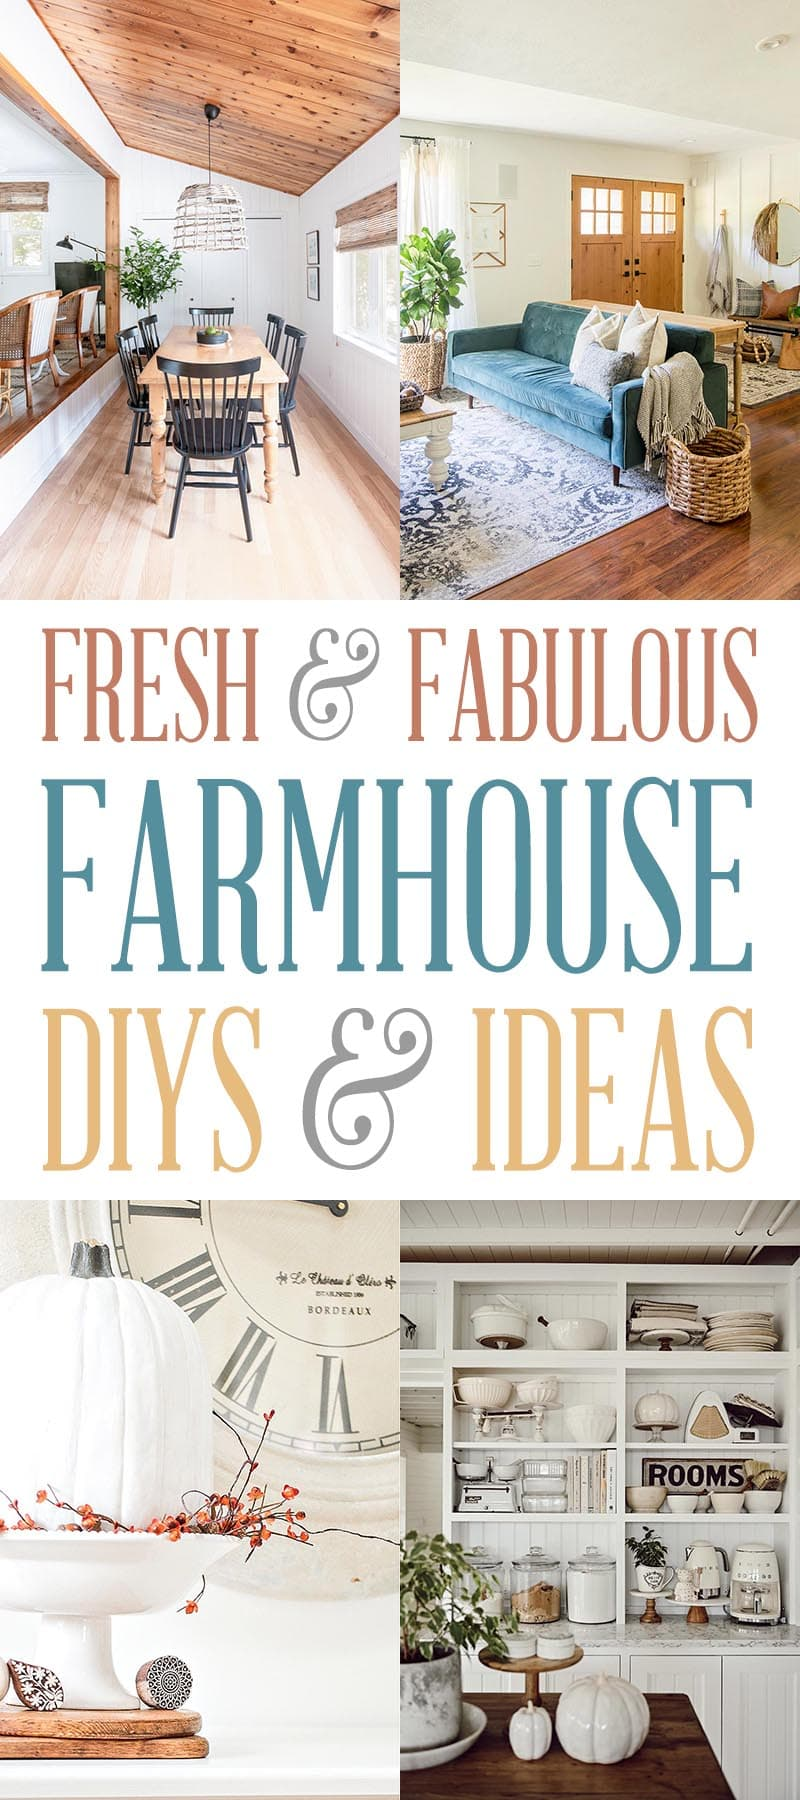 Fabulous and Fresh Farmhouse DIYS and Ideas are waiting to inspire you to create. All the newest projects in the Farmhouse World!